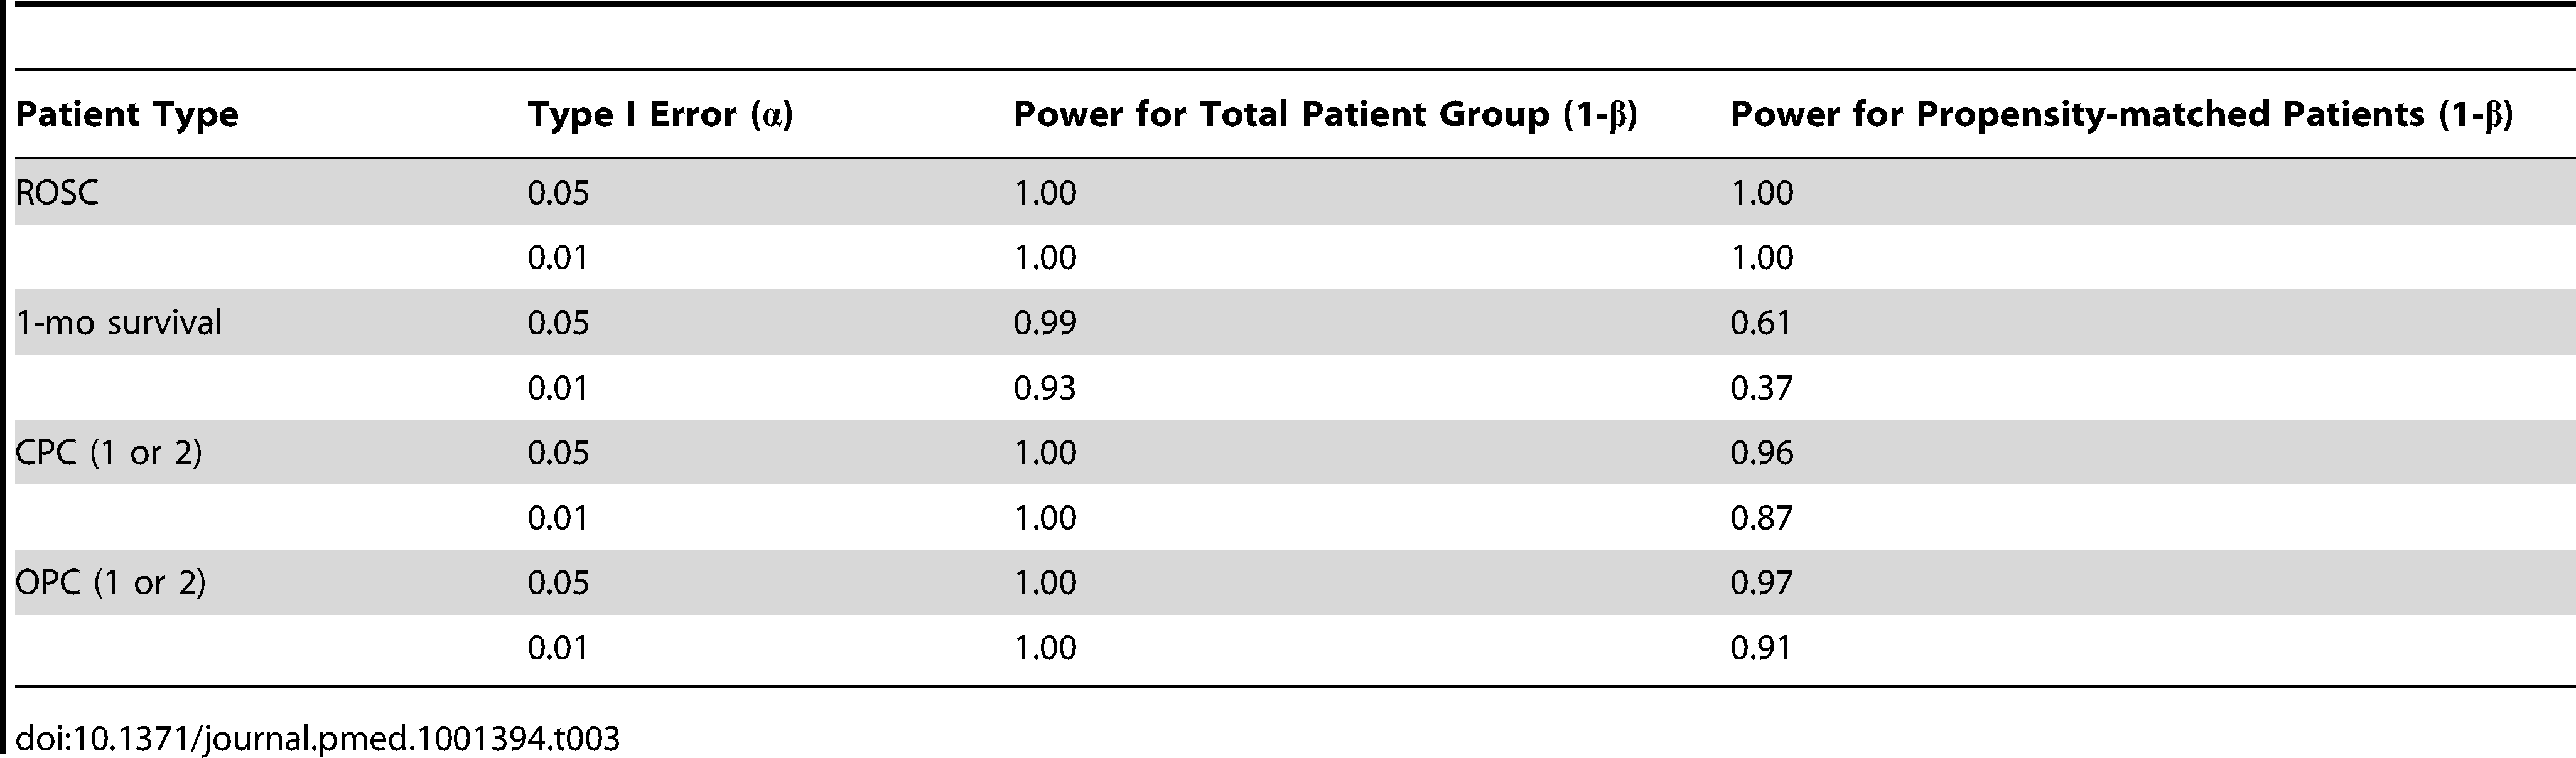 Results of power calculations for all patients and propensity-matched patients.